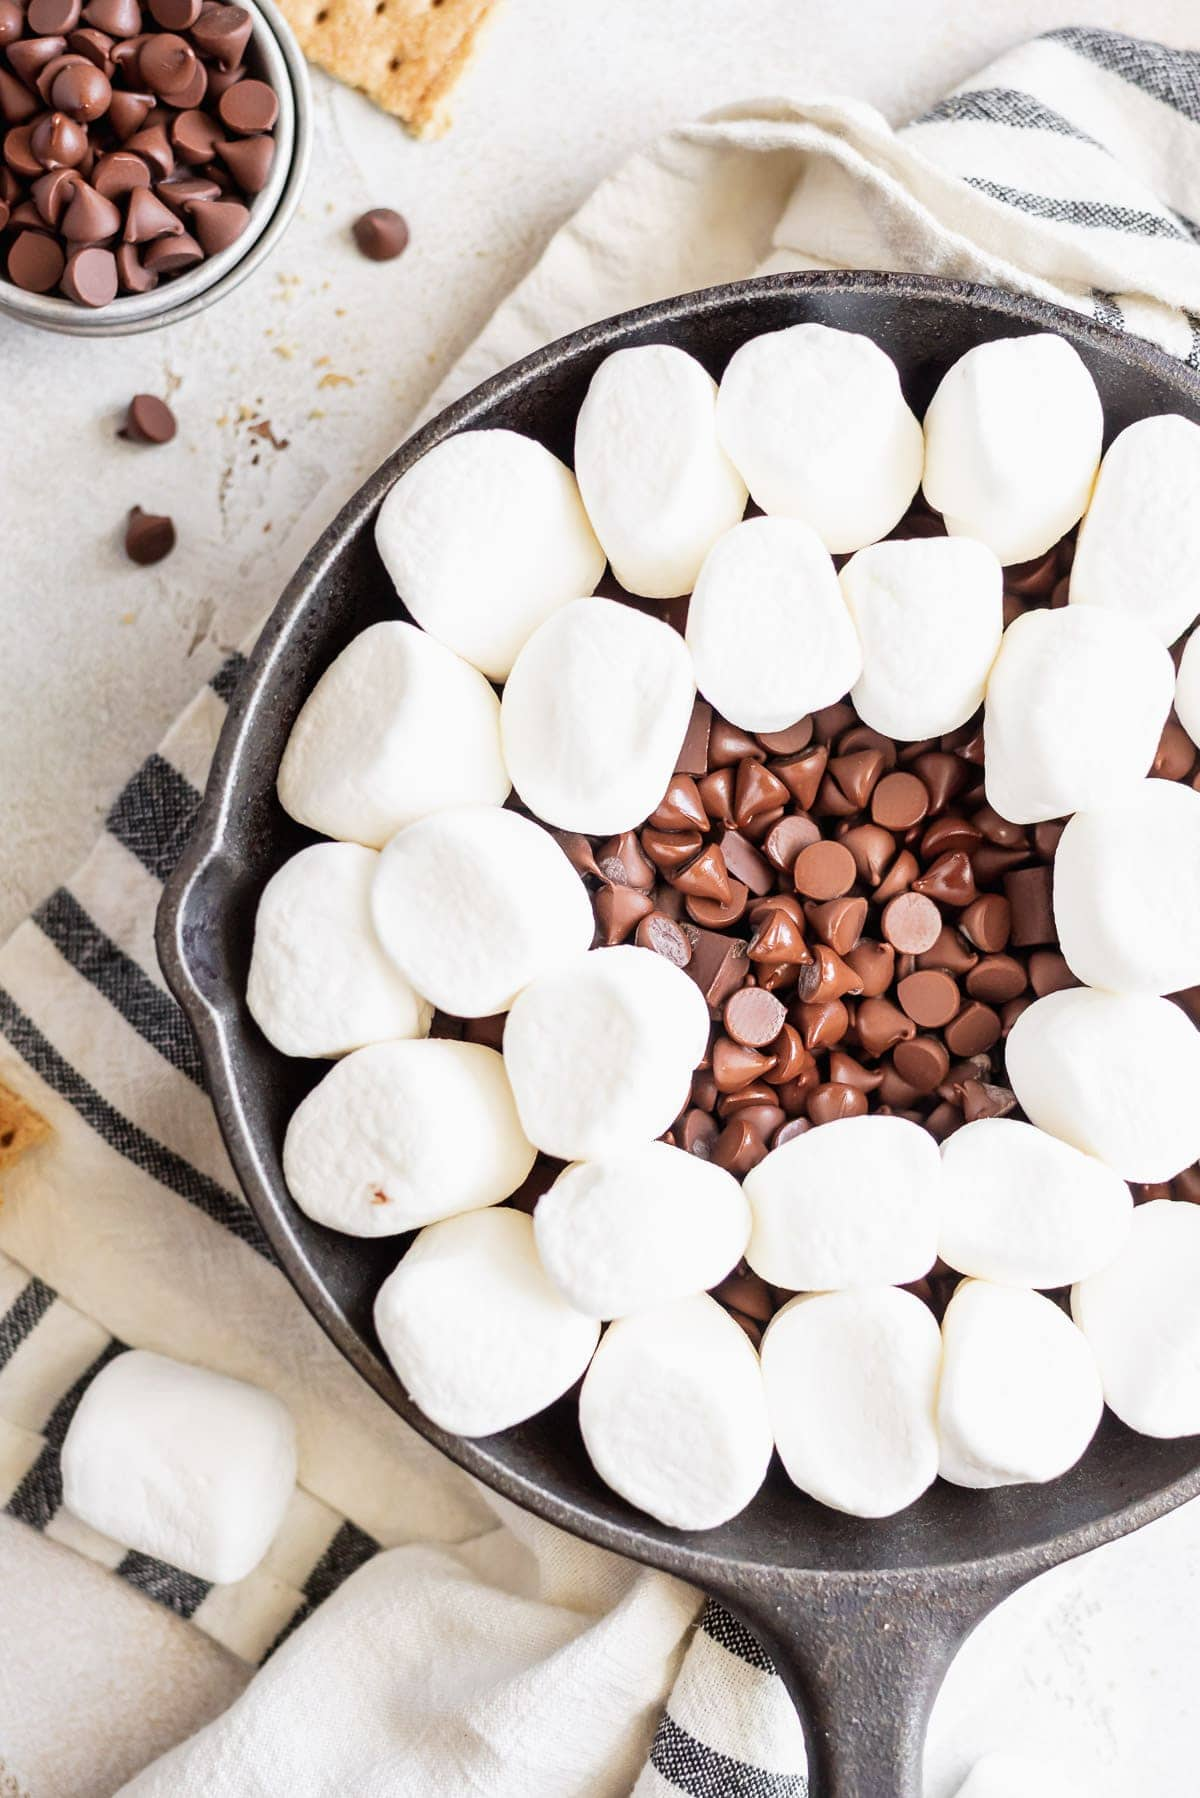 marshmallows covering chocolate chips